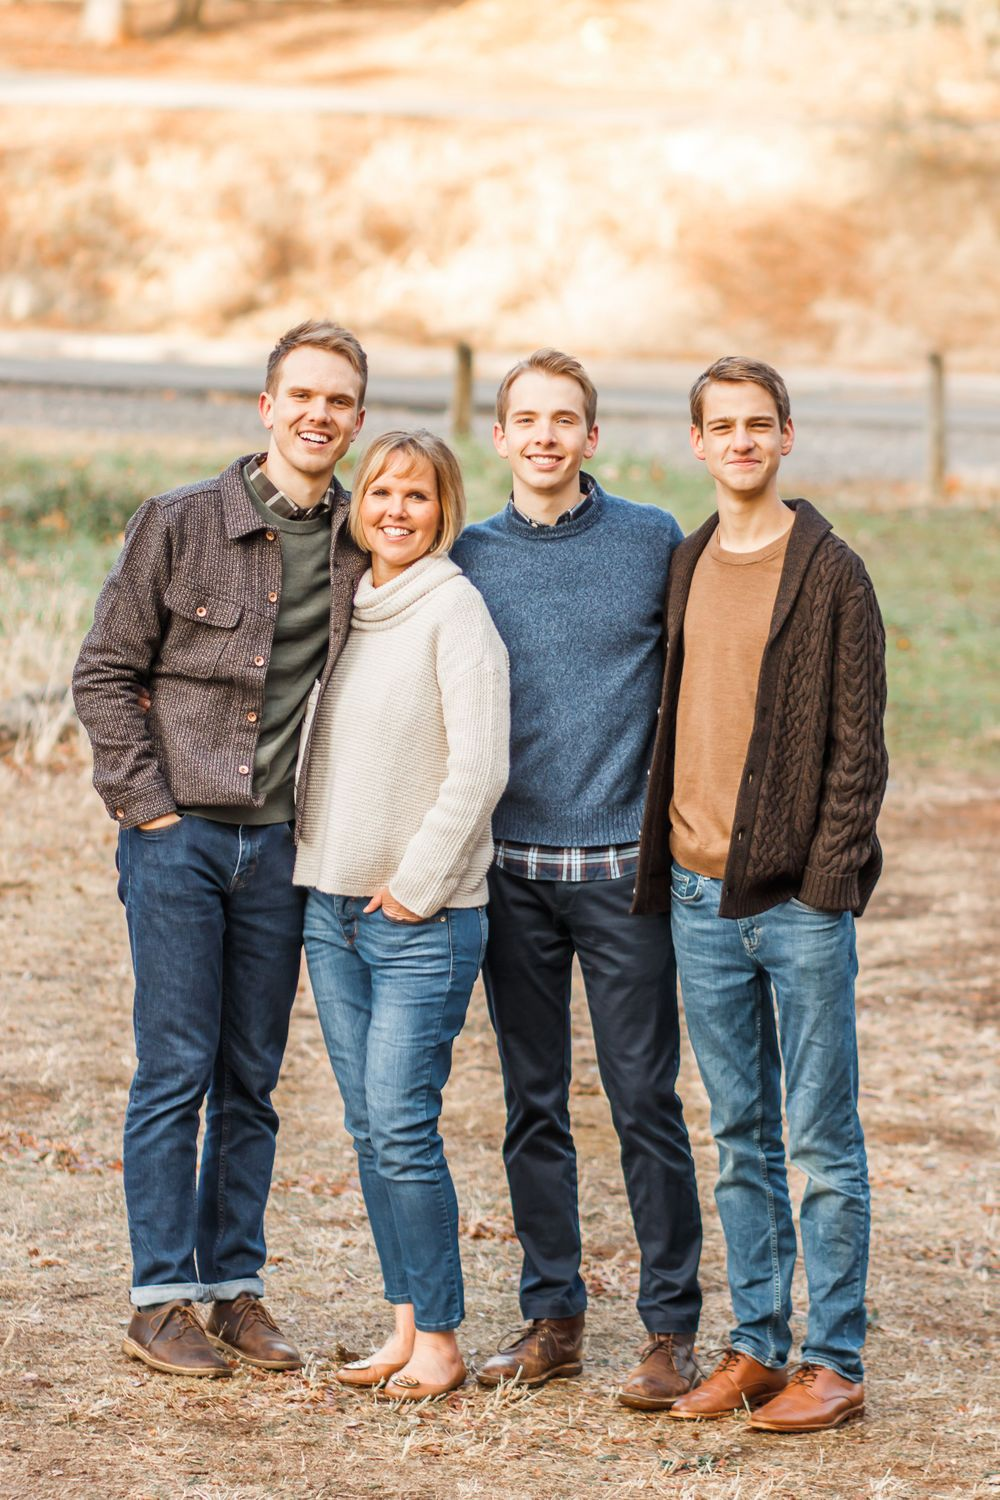 Mother standing with her three sons smiling at the camera